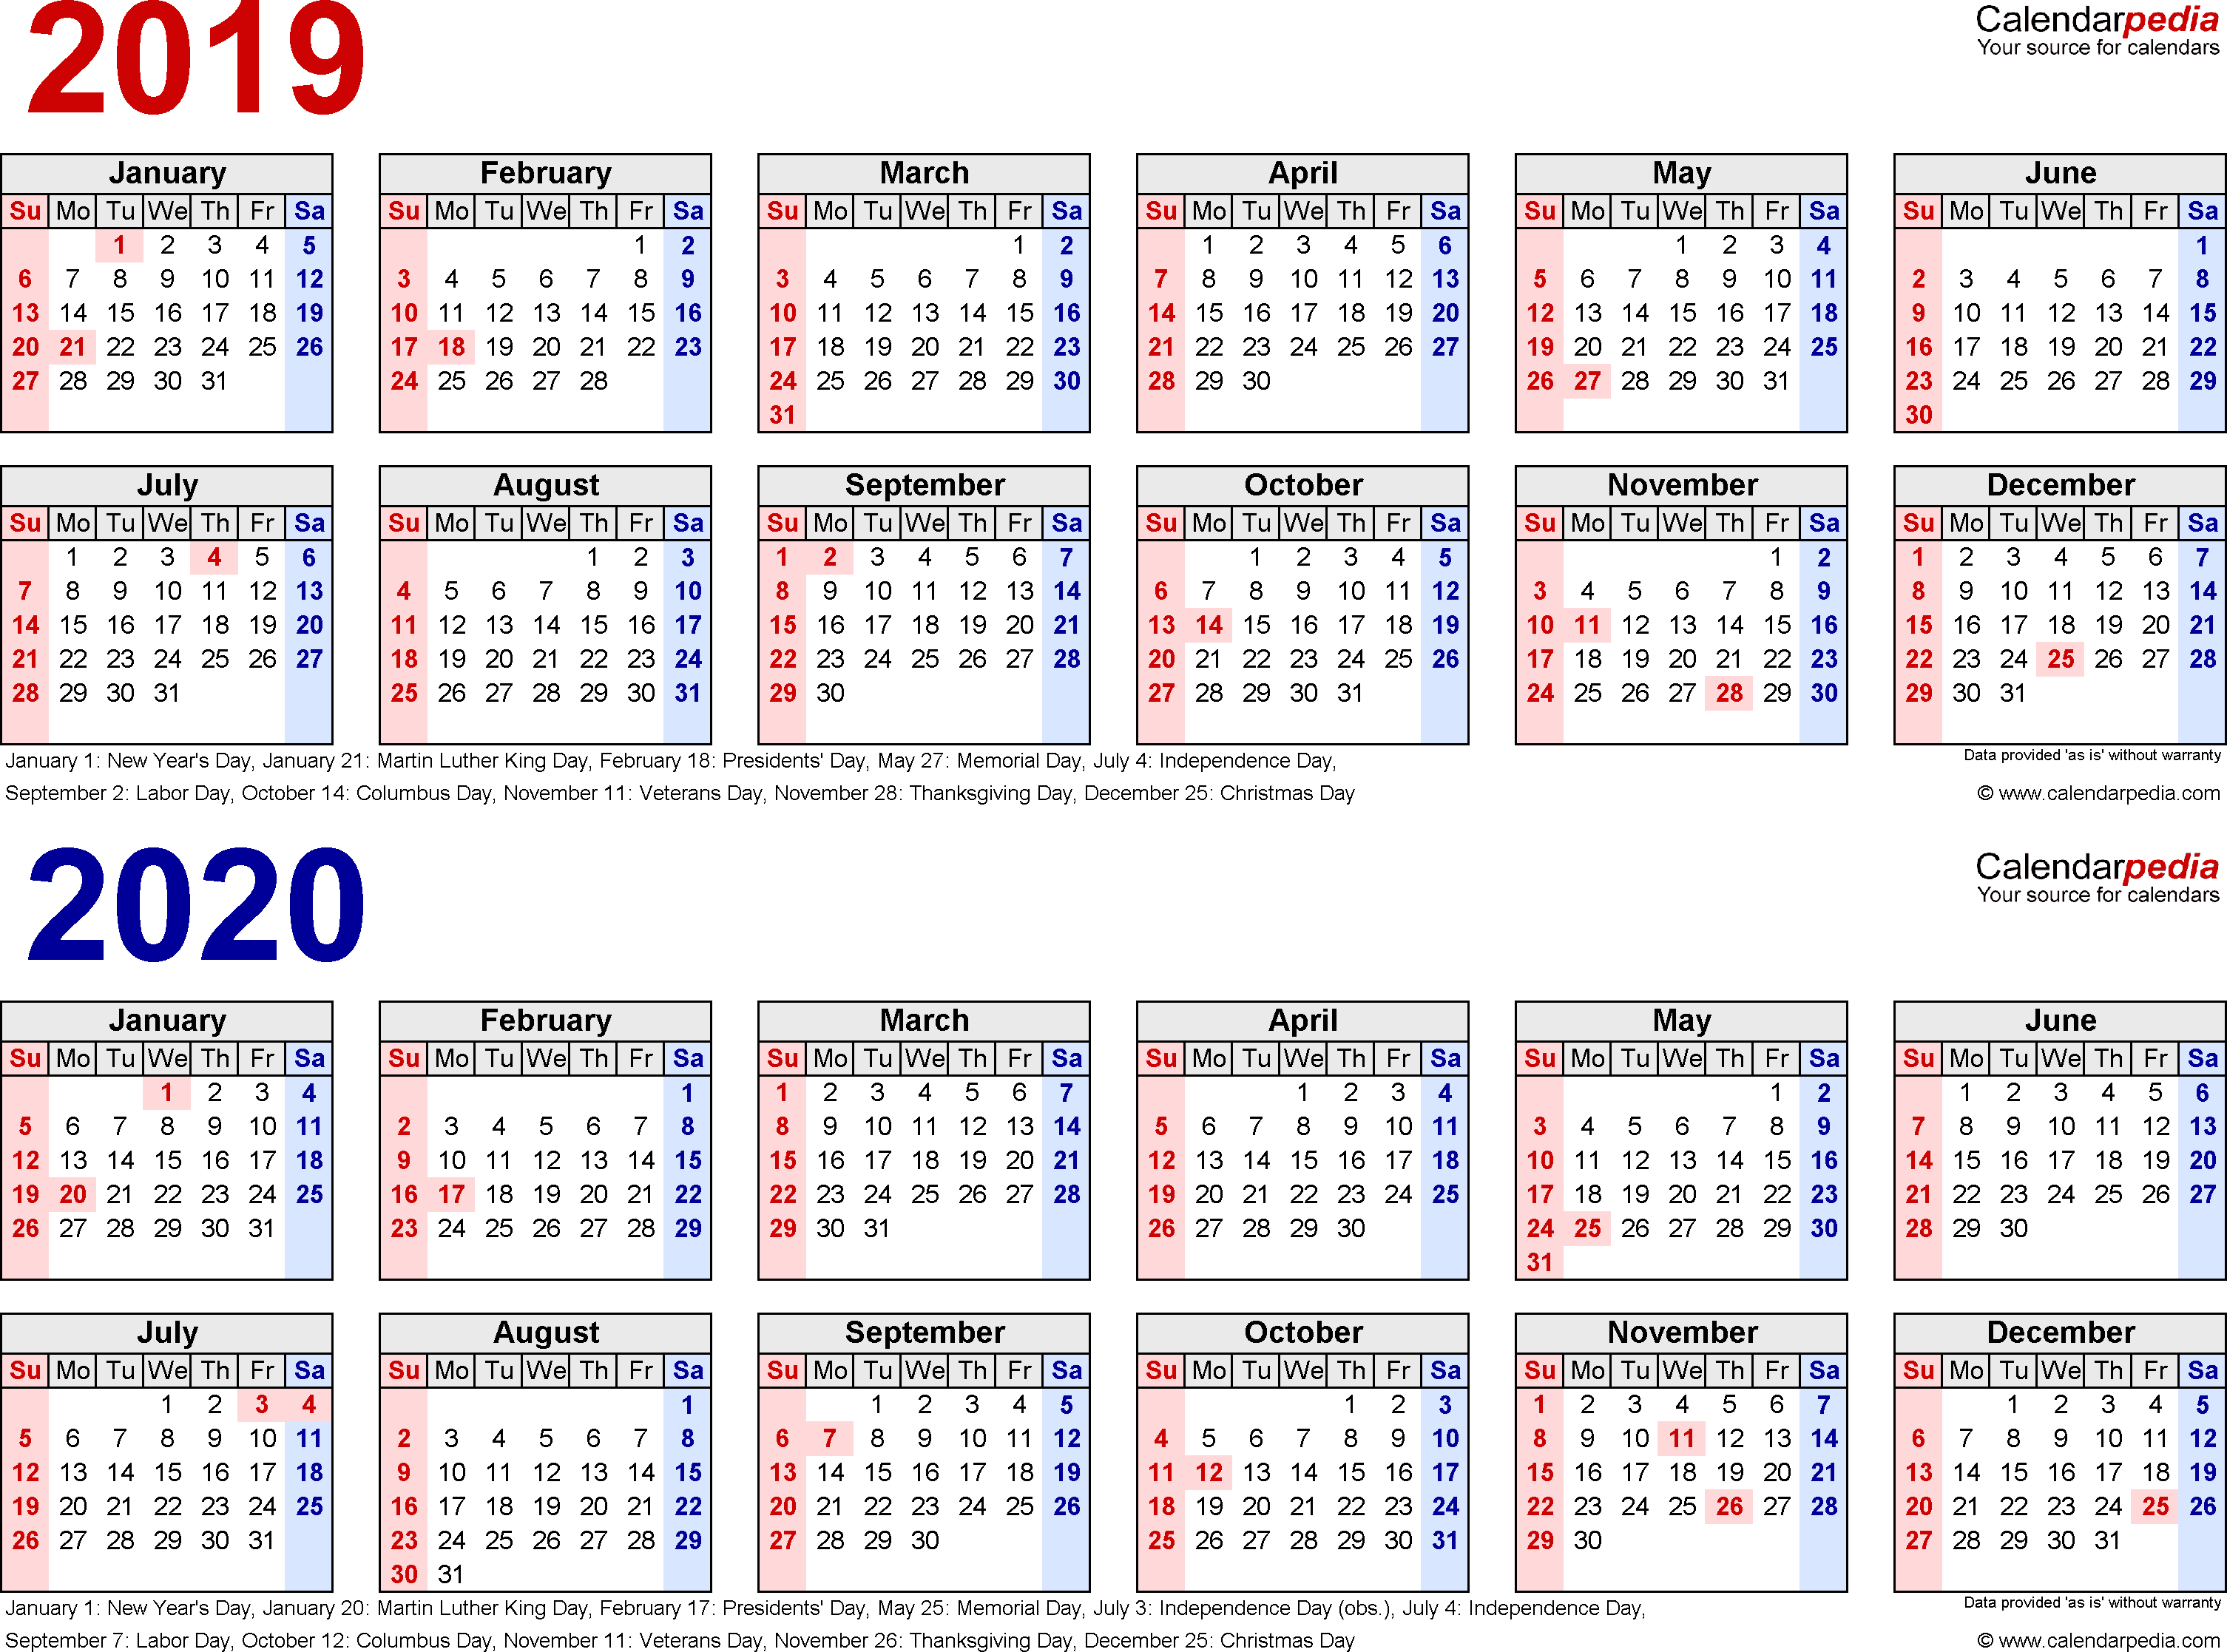 2019-2020 Calendar - Free Printable Two-Year Word Calendars pertaining to Downloadable 2019-2020 Calendar In Word